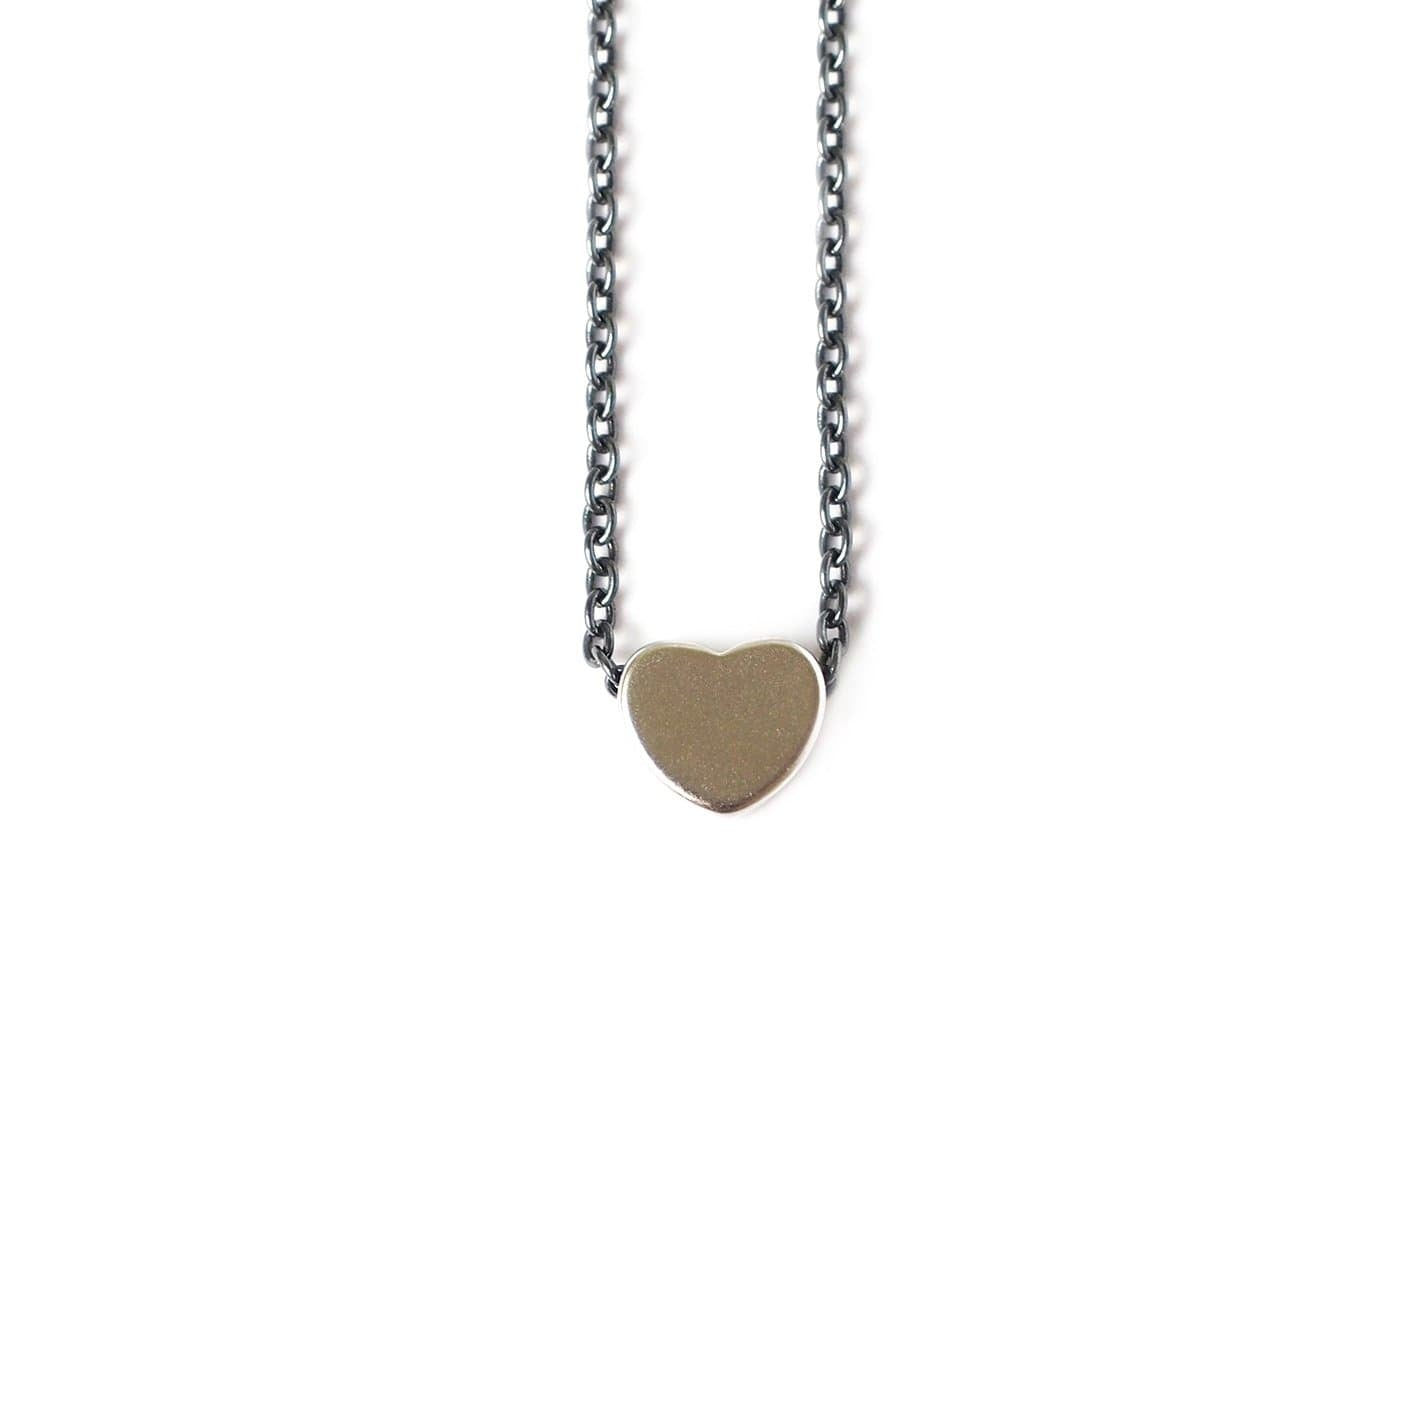 Love Necklace, Necklaces, adorn512, adorn512